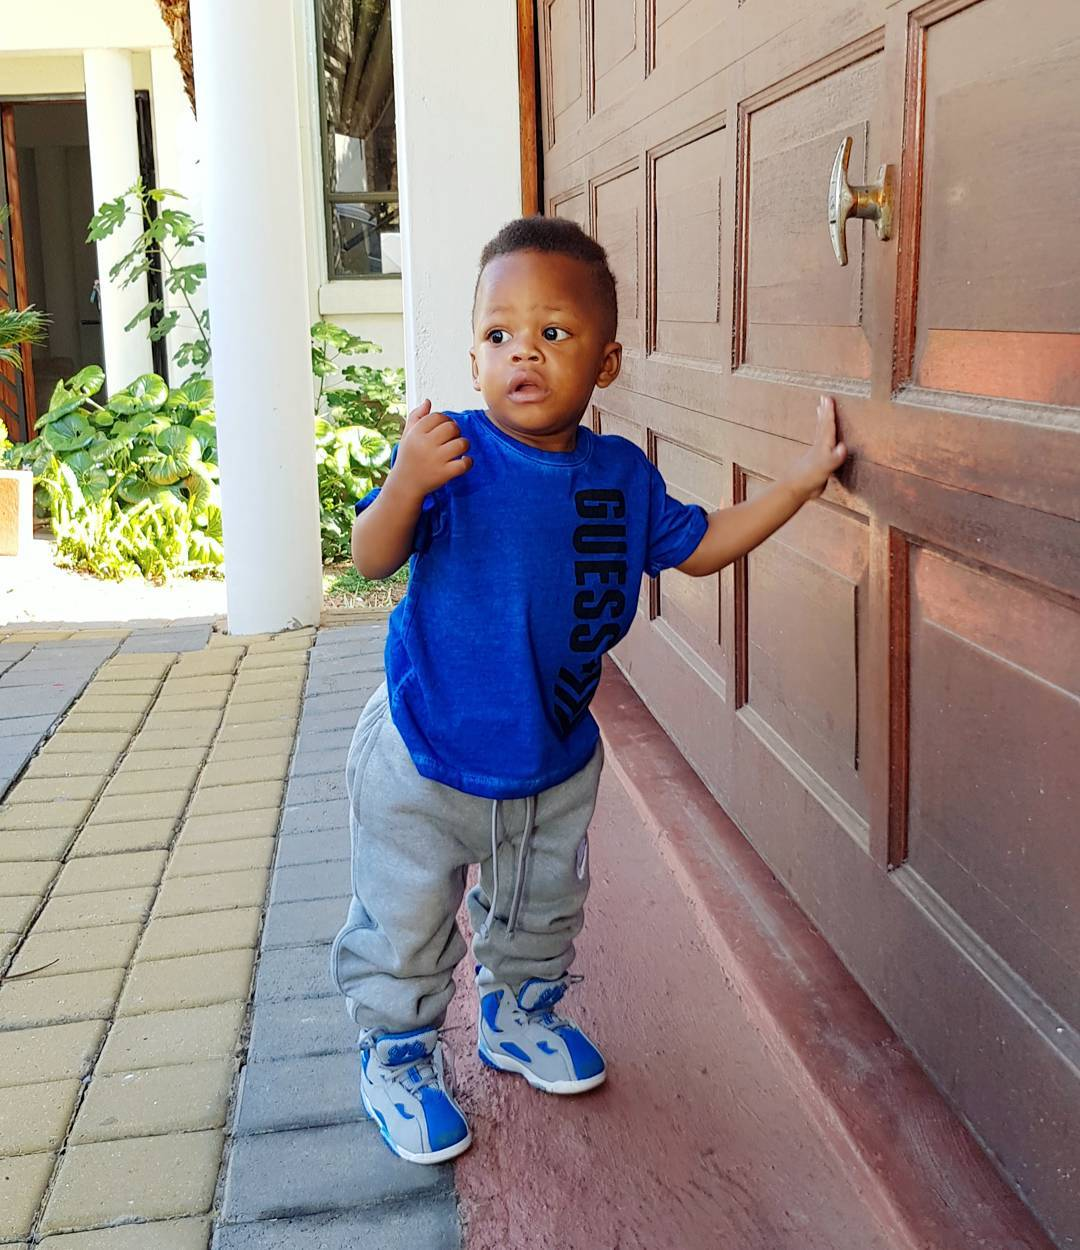 Nillan style - Check out Diamond Platnumz' heir, Prince Nillan flaunting his cars